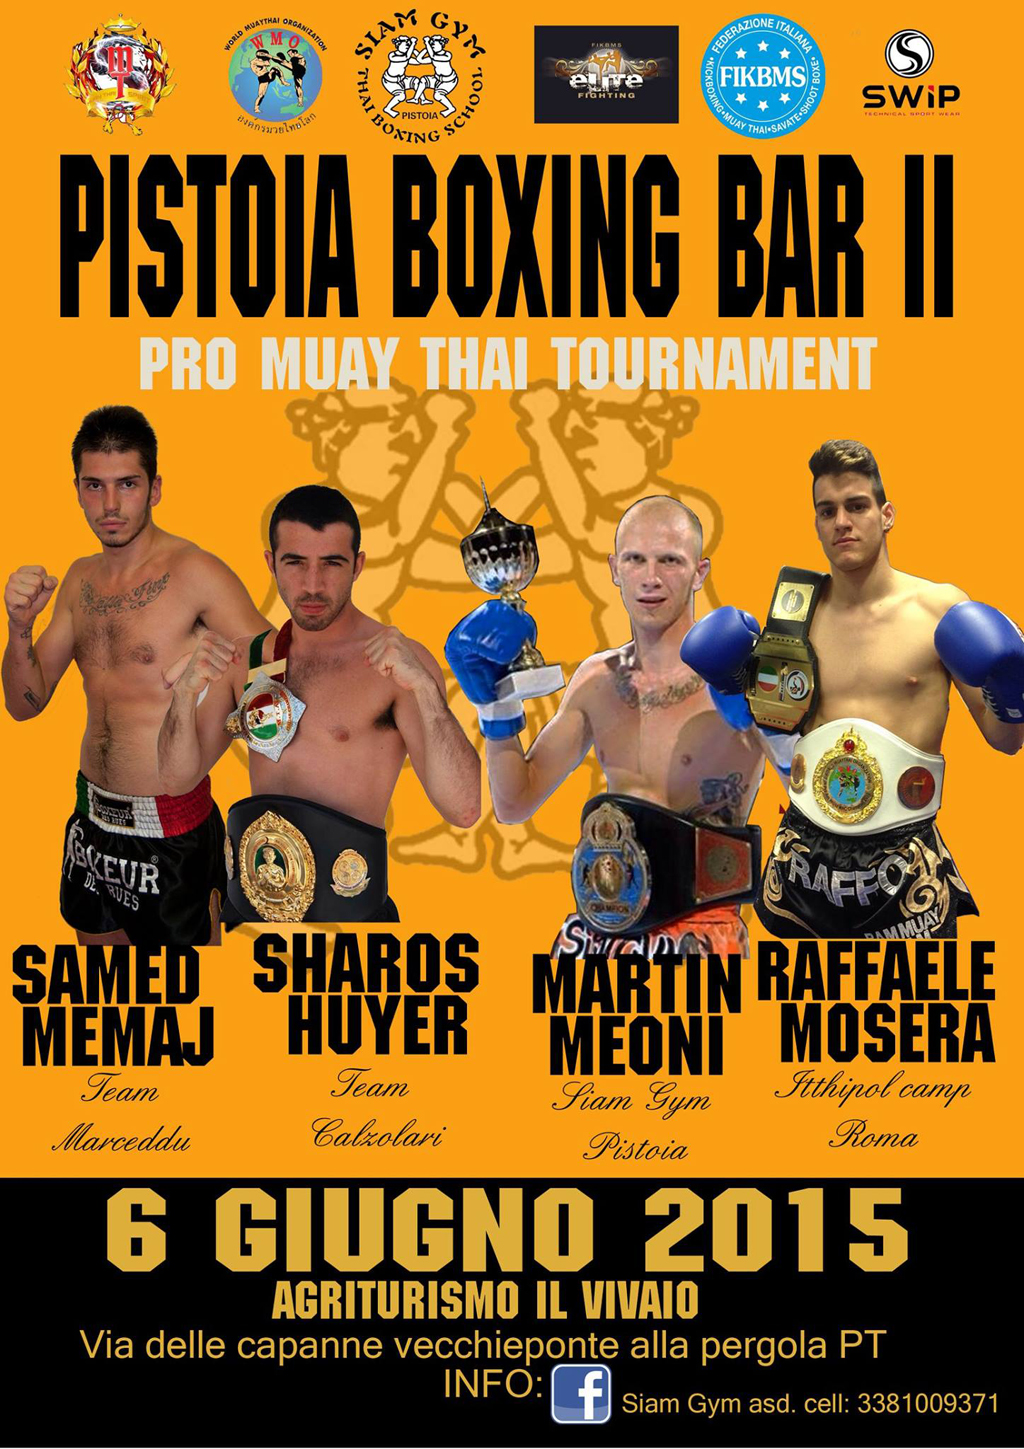 pistoia boxing bar 2